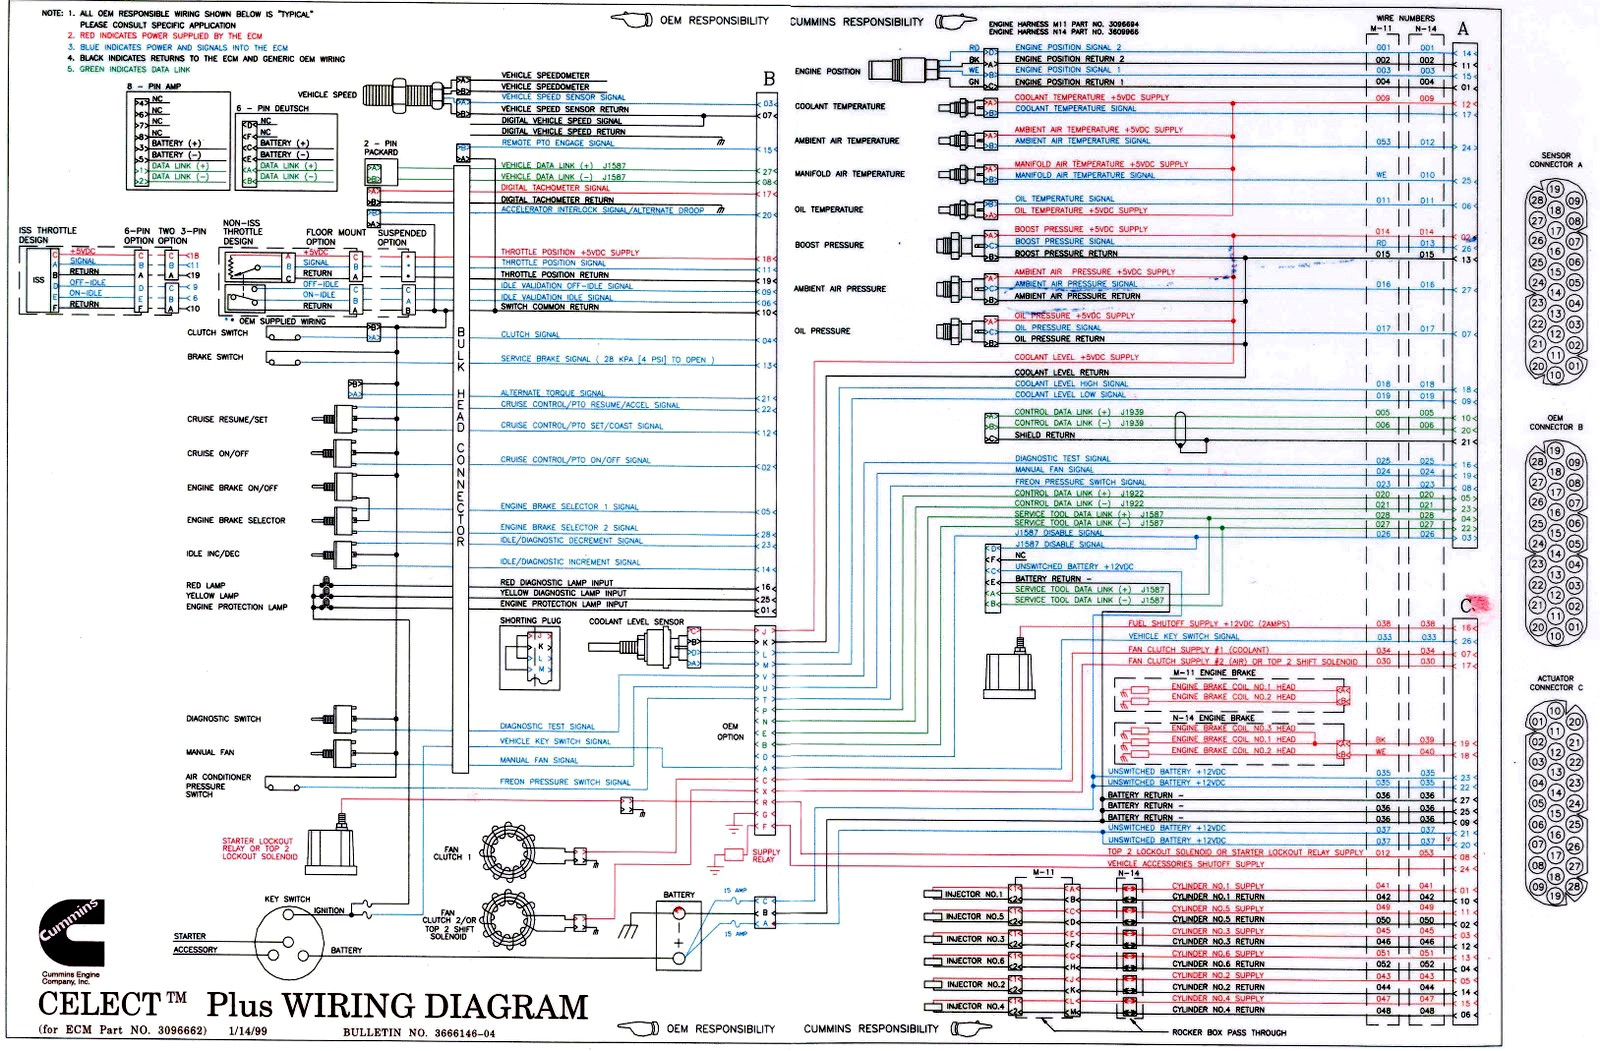 Old Fashioned Cat Th63 Wiring Schematics Pattern - Electrical ...